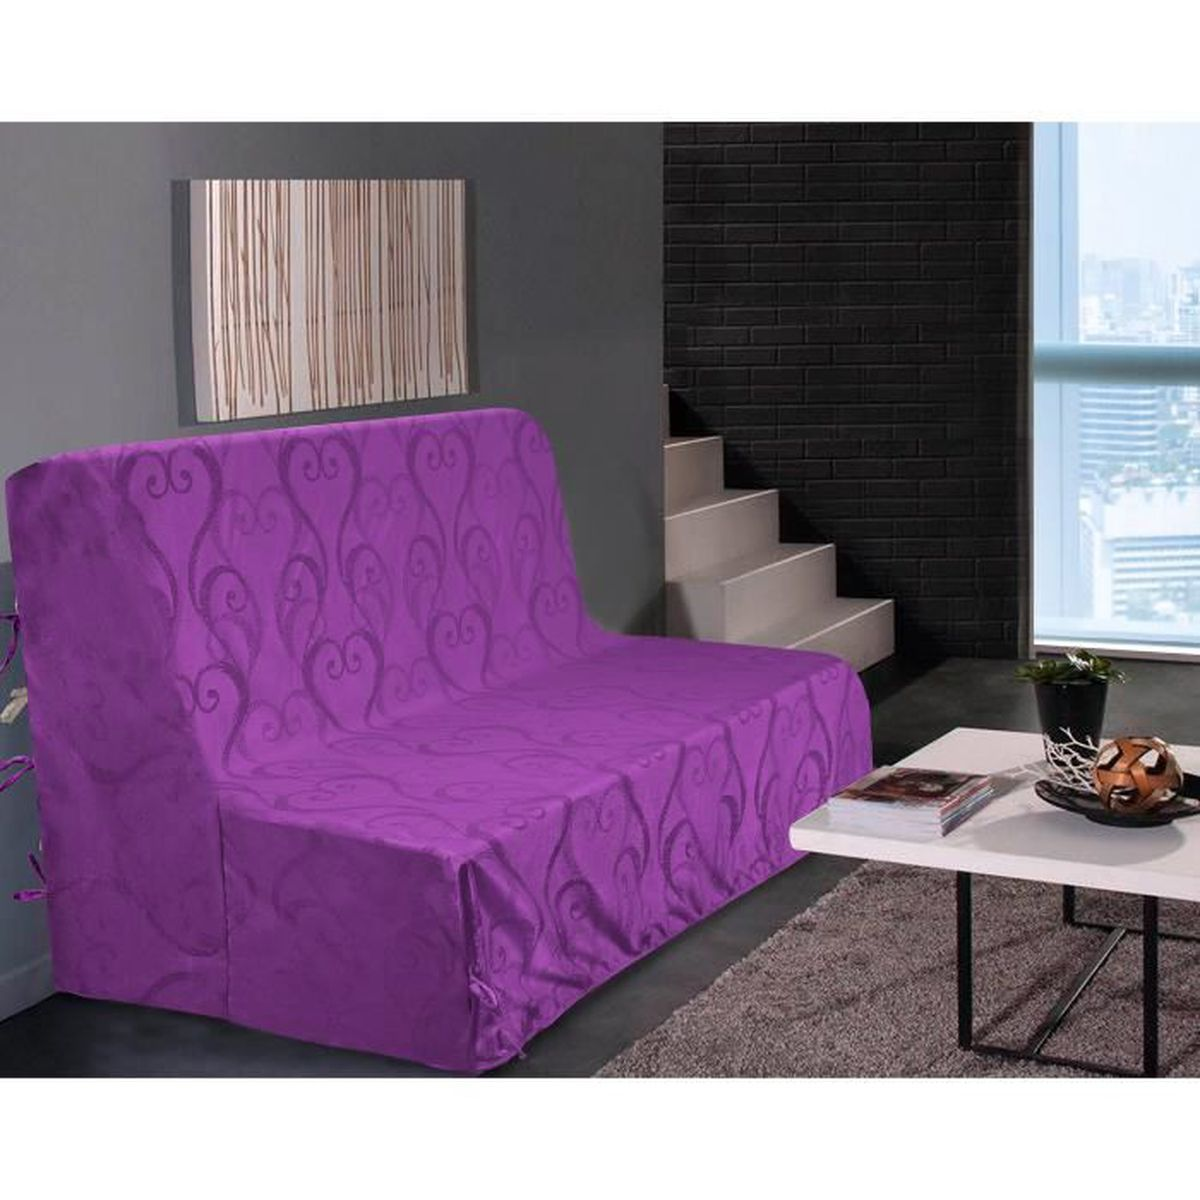 housse clic clac violet achat vente housse clic clac violet pas cher cdiscount. Black Bedroom Furniture Sets. Home Design Ideas